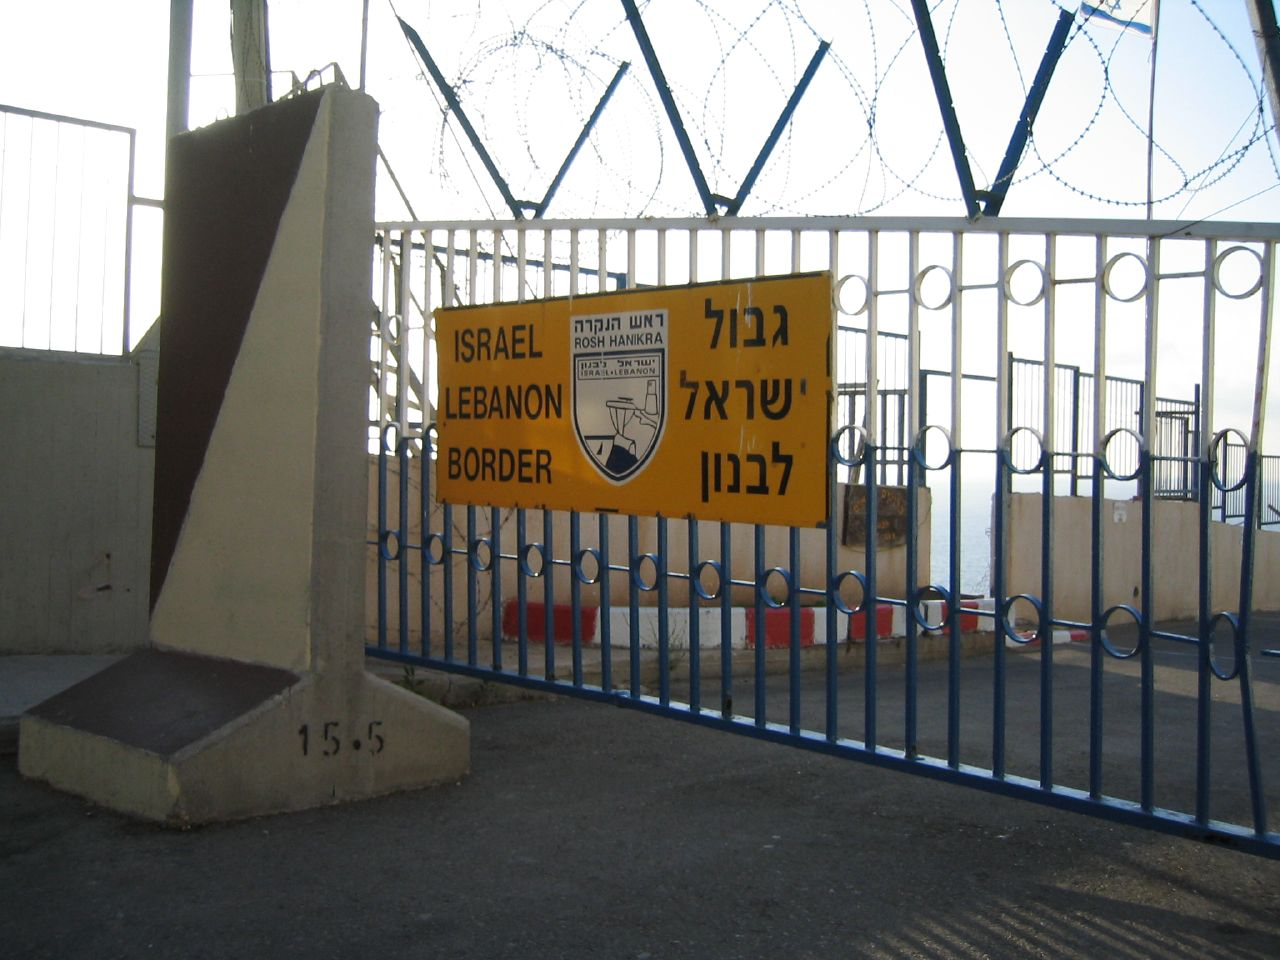 The Israel-Lebanon border at Rosh Hanikra. Four IDF soldiers were injured in a blast along the Lebanon border. Credit: Campsmum via Wikimedia Commons.